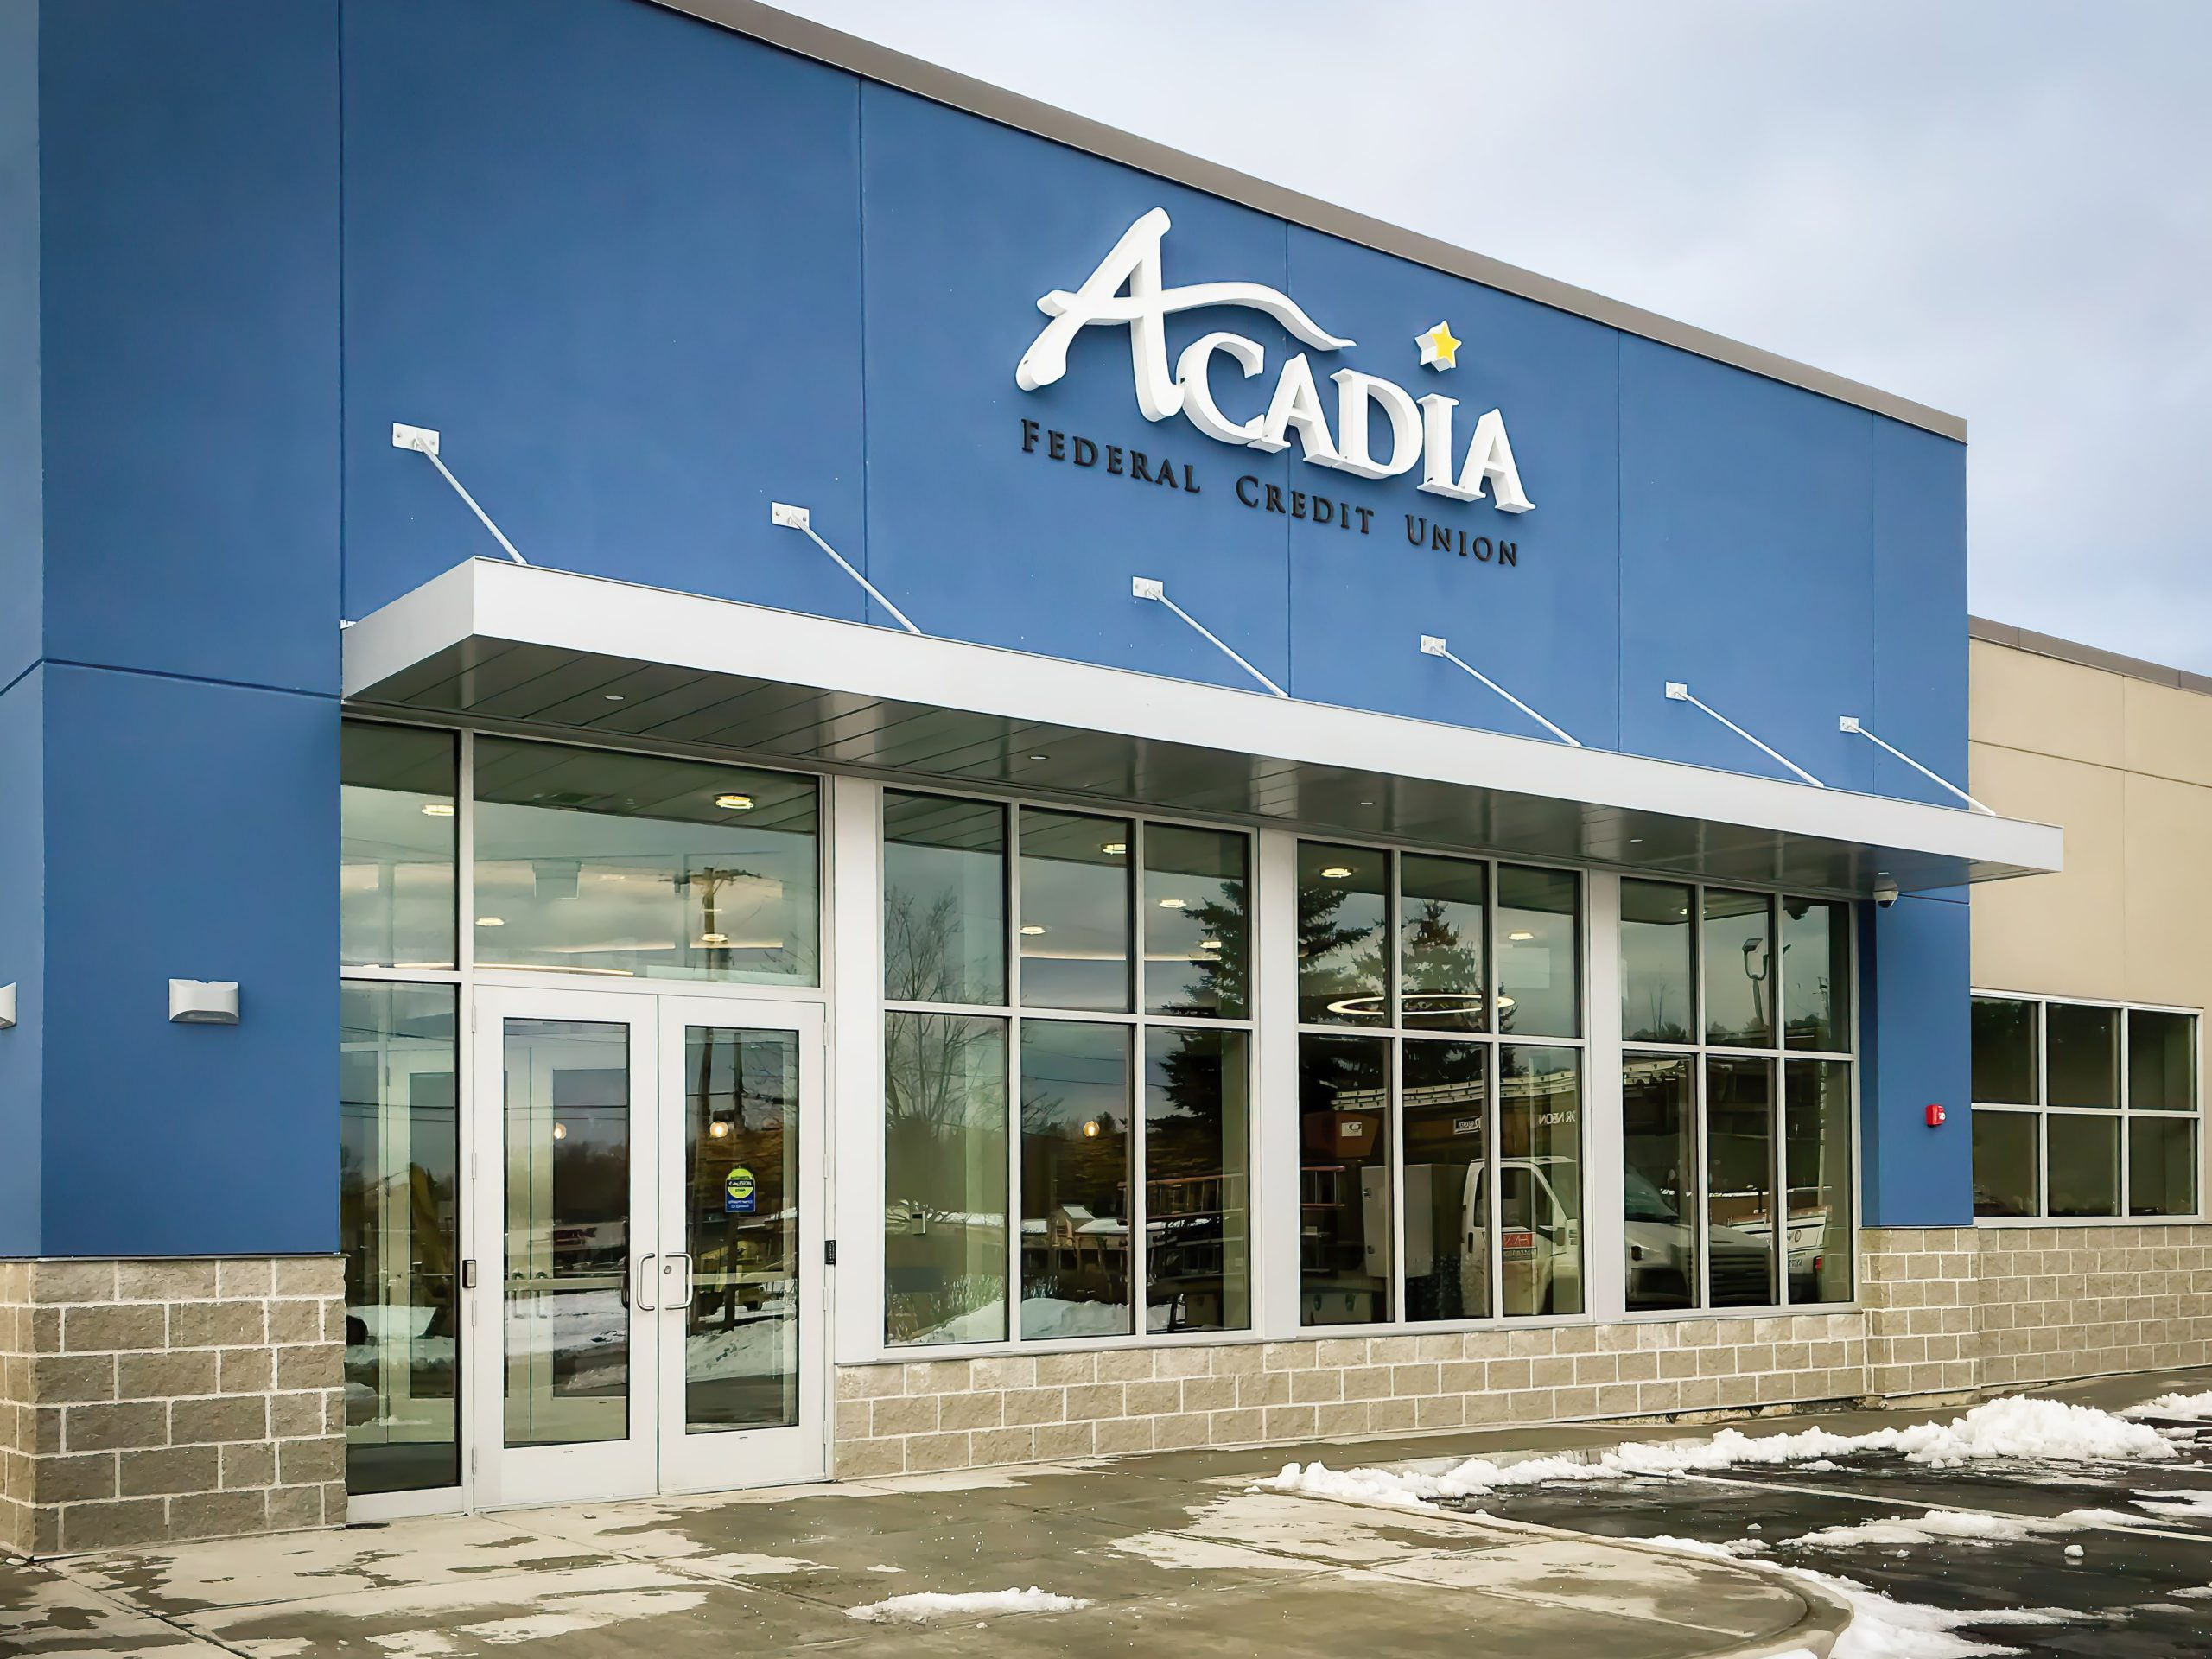 Awnex silver hanger rod canopy project for Acadia Federal Credit Union in Bangor, Maine.